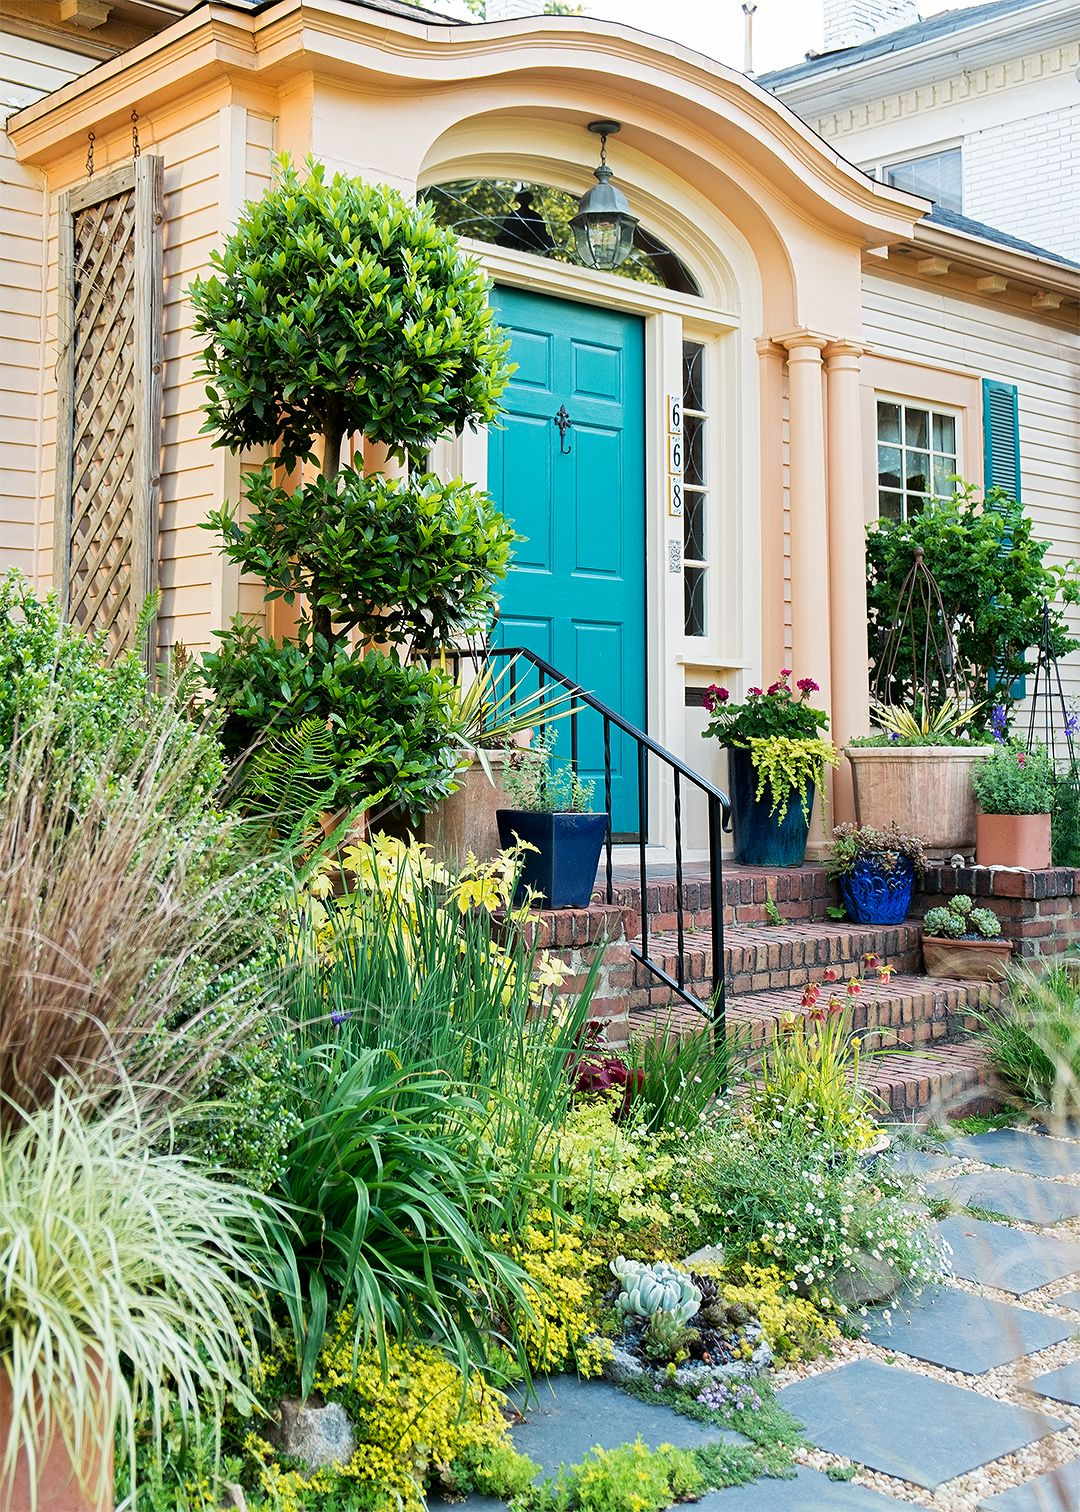 See How This Small Garden Transformed Into An Urban Sanctuary